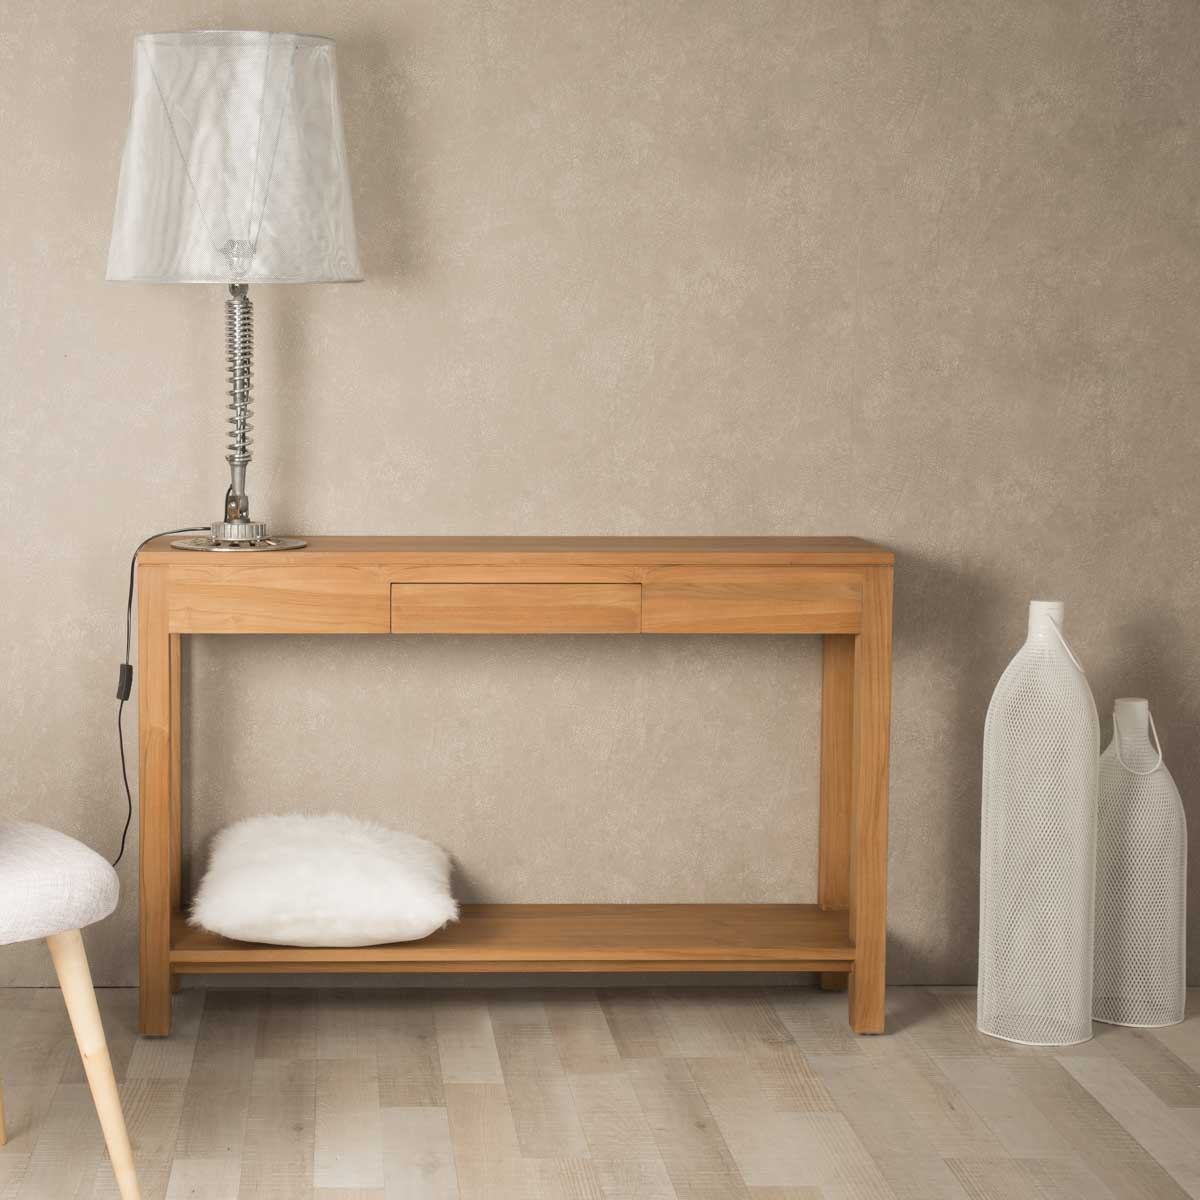 console de salon en bois de teck massif moderne rectangle naturel l 120. Black Bedroom Furniture Sets. Home Design Ideas